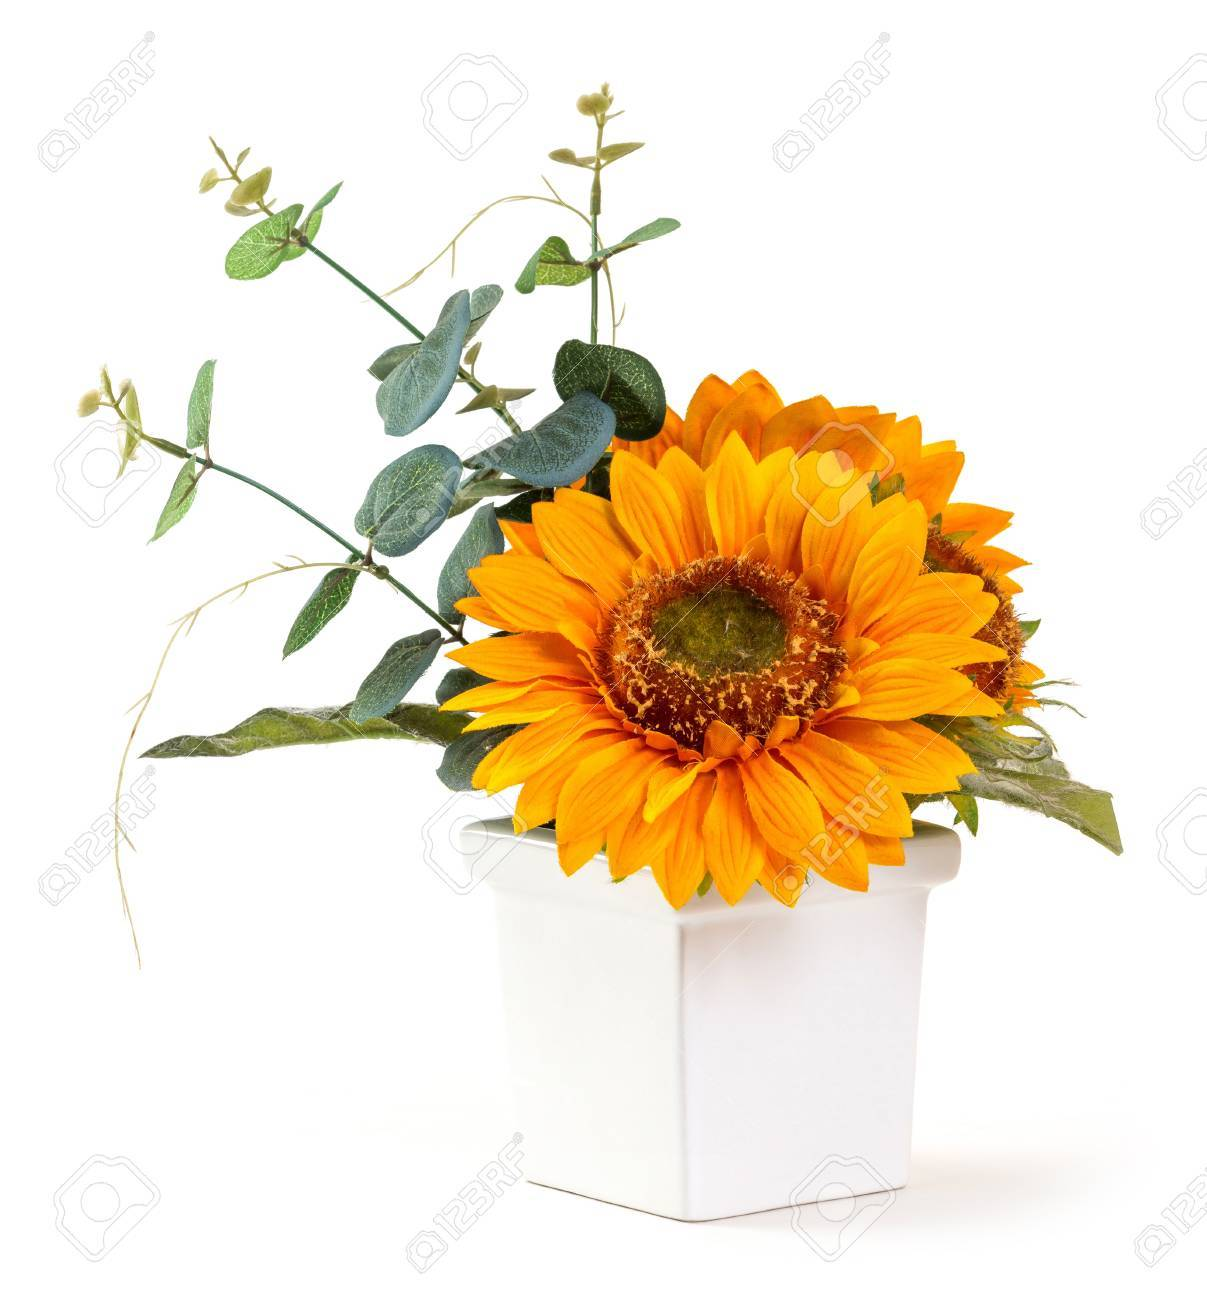 Bouquet Of Sunflower And Eucalyptus Branch In Ceramic Pot Isolated Stock Photo Picture And Royalty Free Image Image 20730523